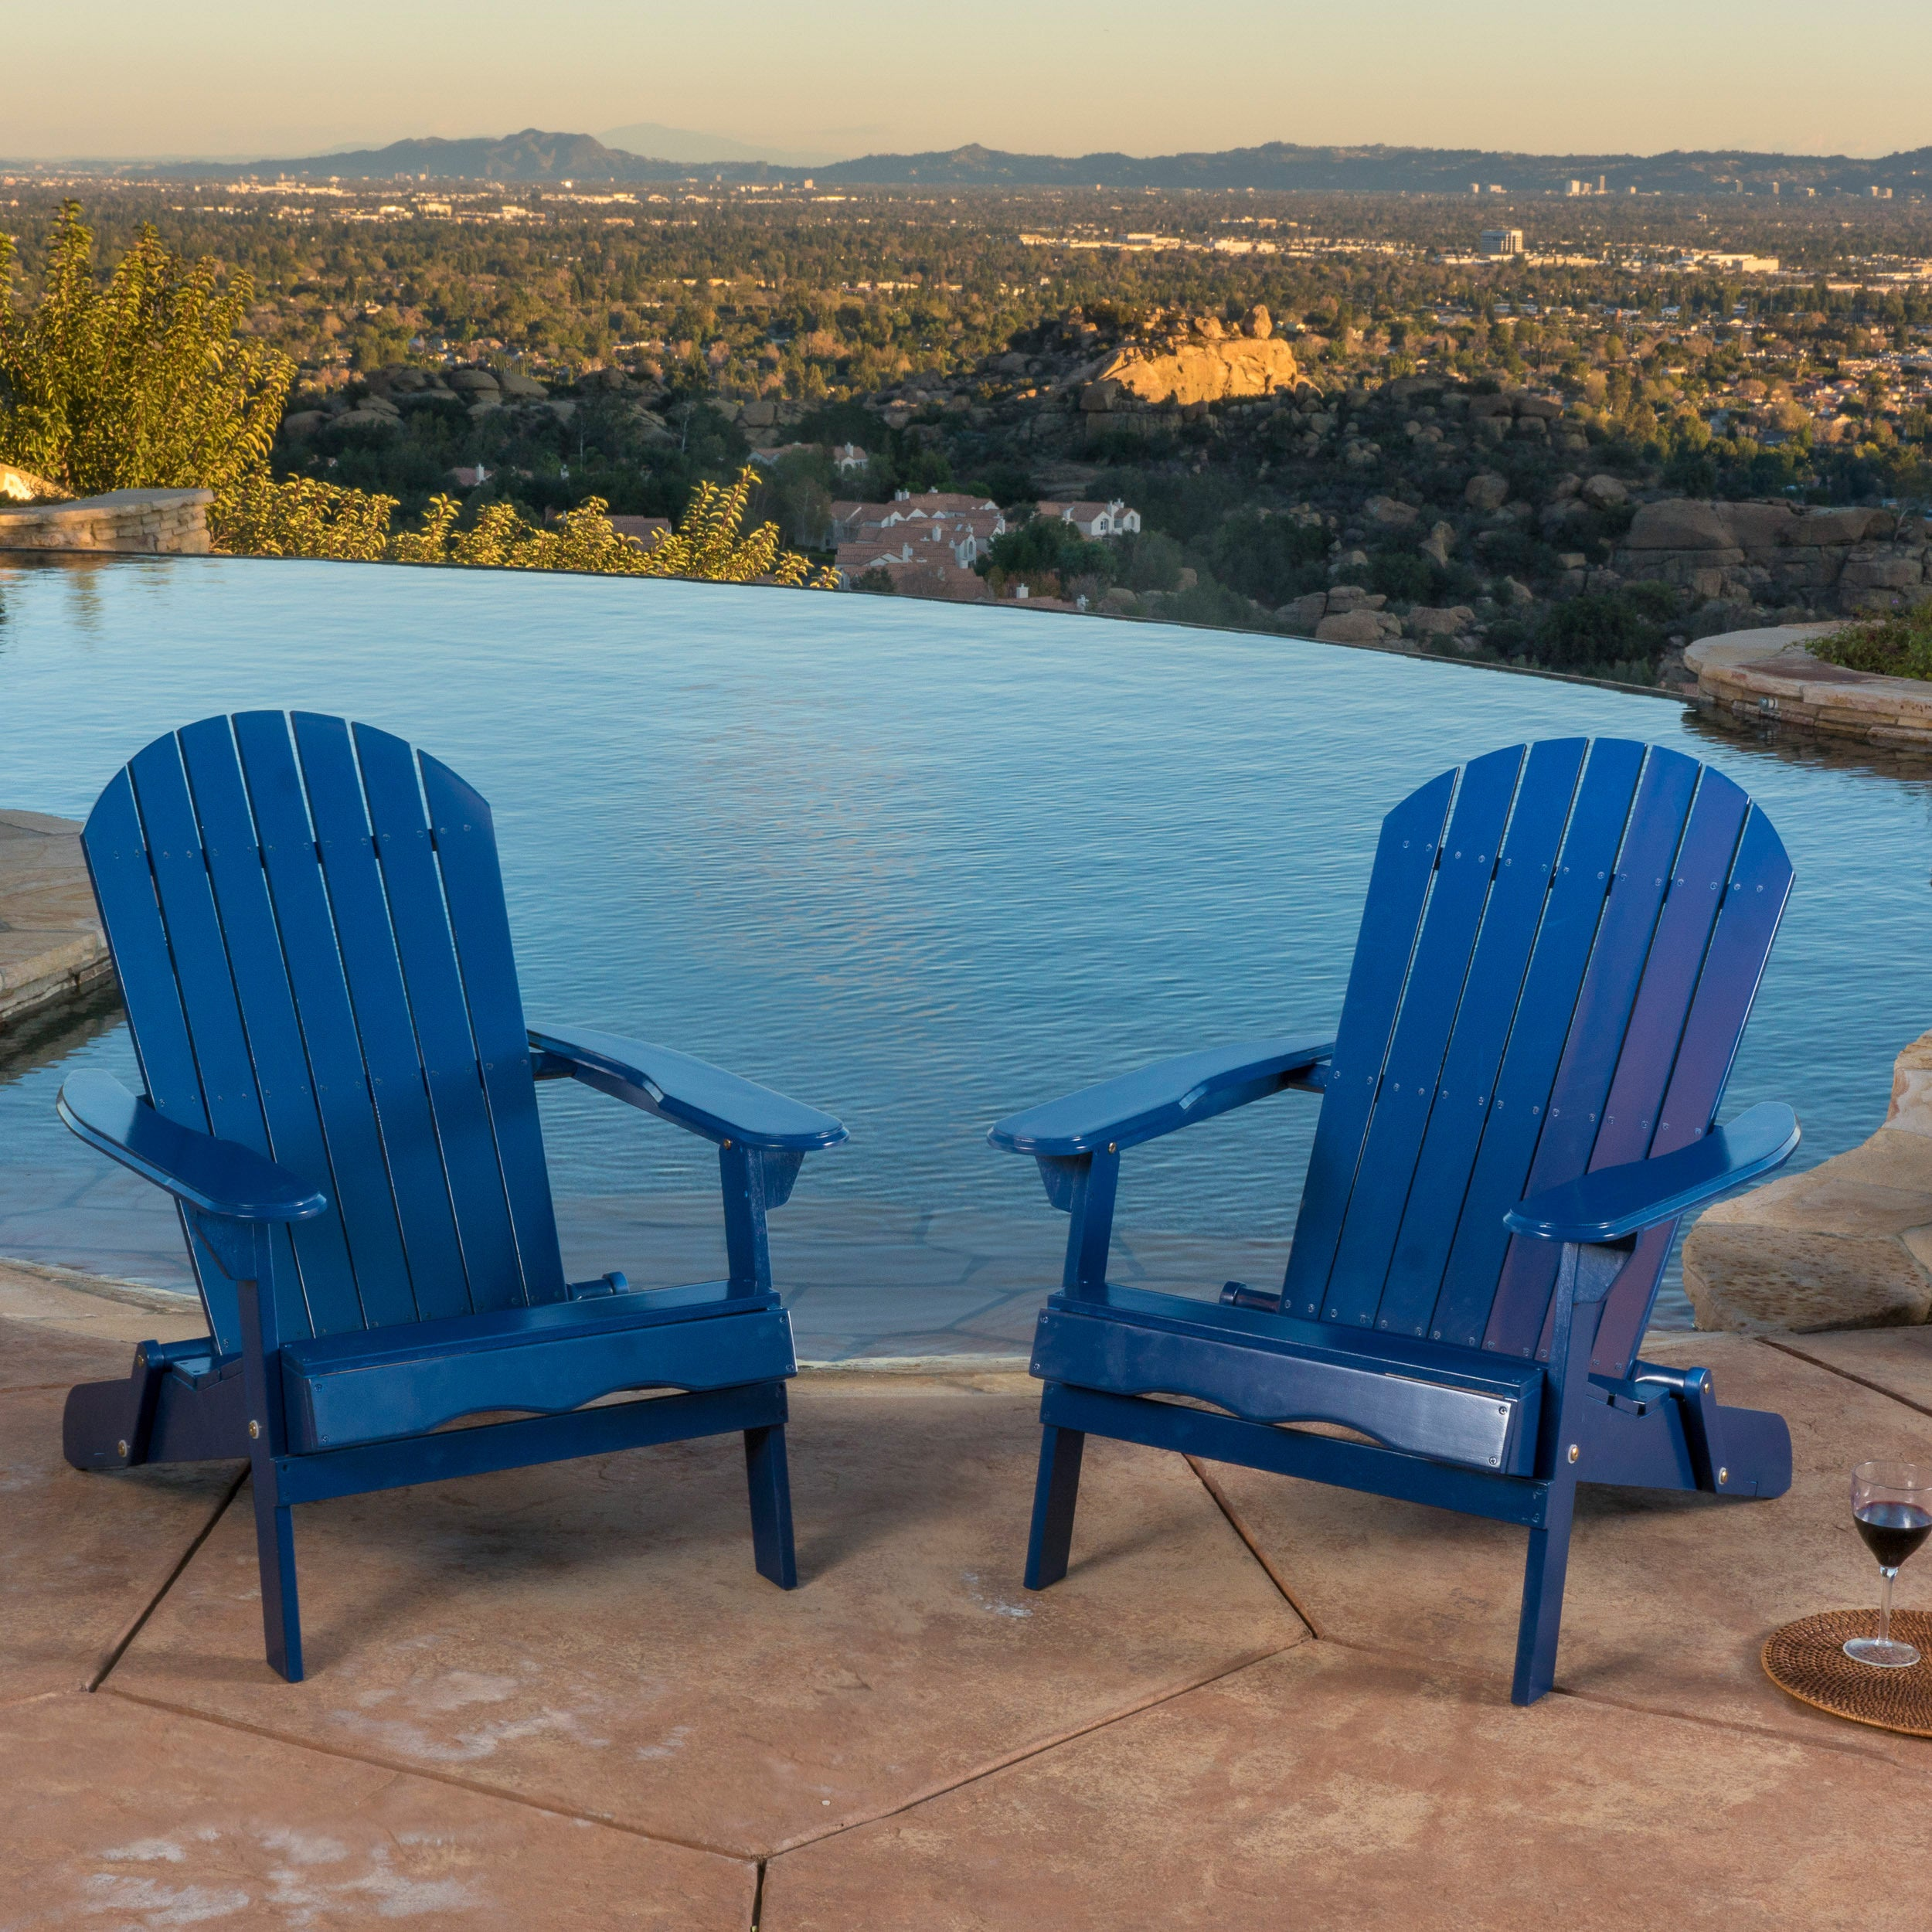 Hanlee Outdoor Folding Wood Adirondack Chair (Set of 2) by Christopher Knight Home & Buy Adirondack Chairs Online at Overstock | Our Best Patio Furniture ...